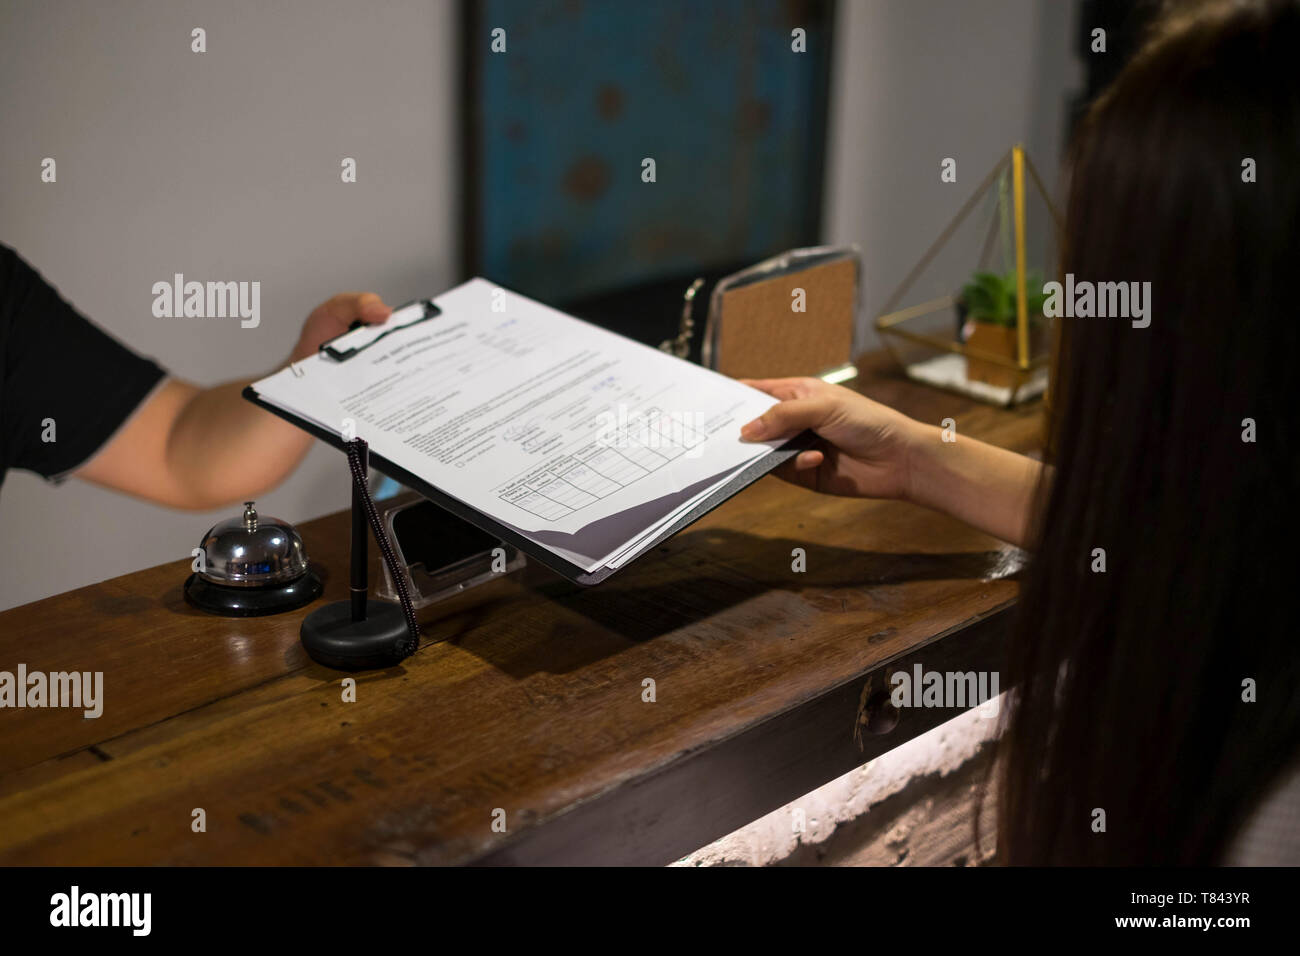 Receptionist's sent the documents to guest for signing and filling up form check-in process.Hotel concept. - Stock Image